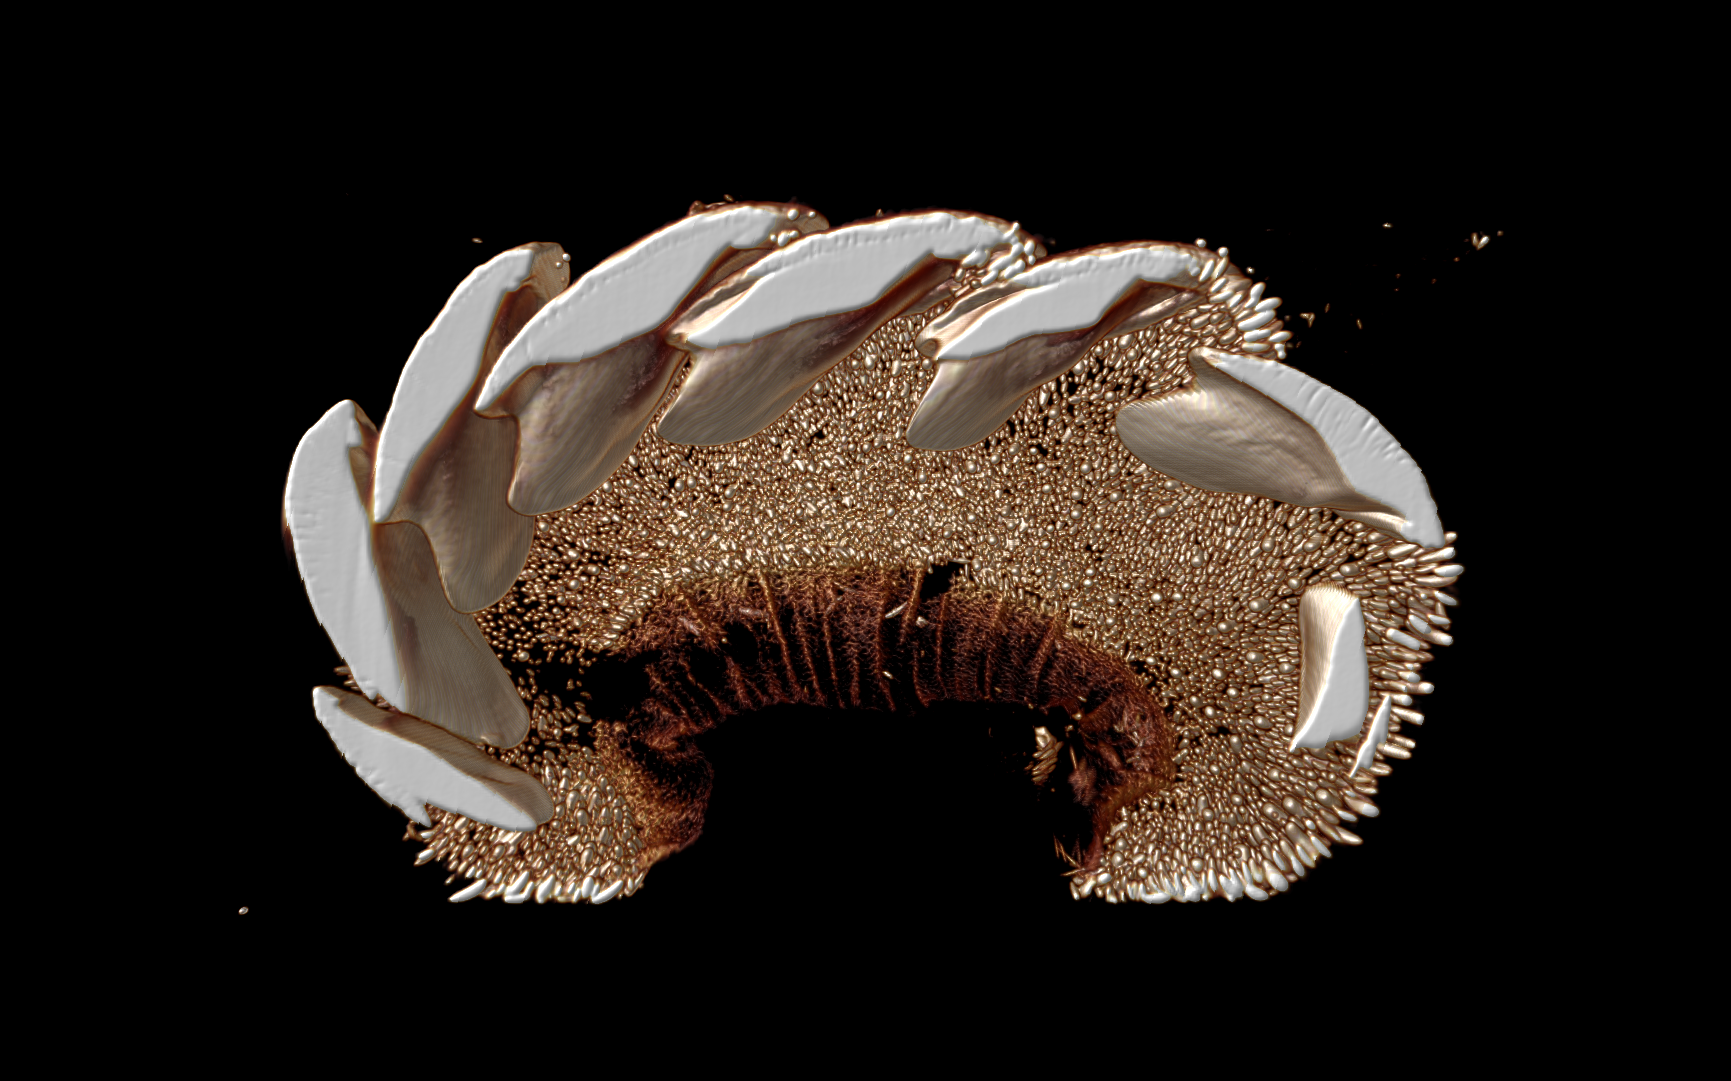 Micro-computed tomography scans of zoological specimens, such as this chiton (Mollusca), are being used to enable students to perform virtual dissections and study anatomy remotely.